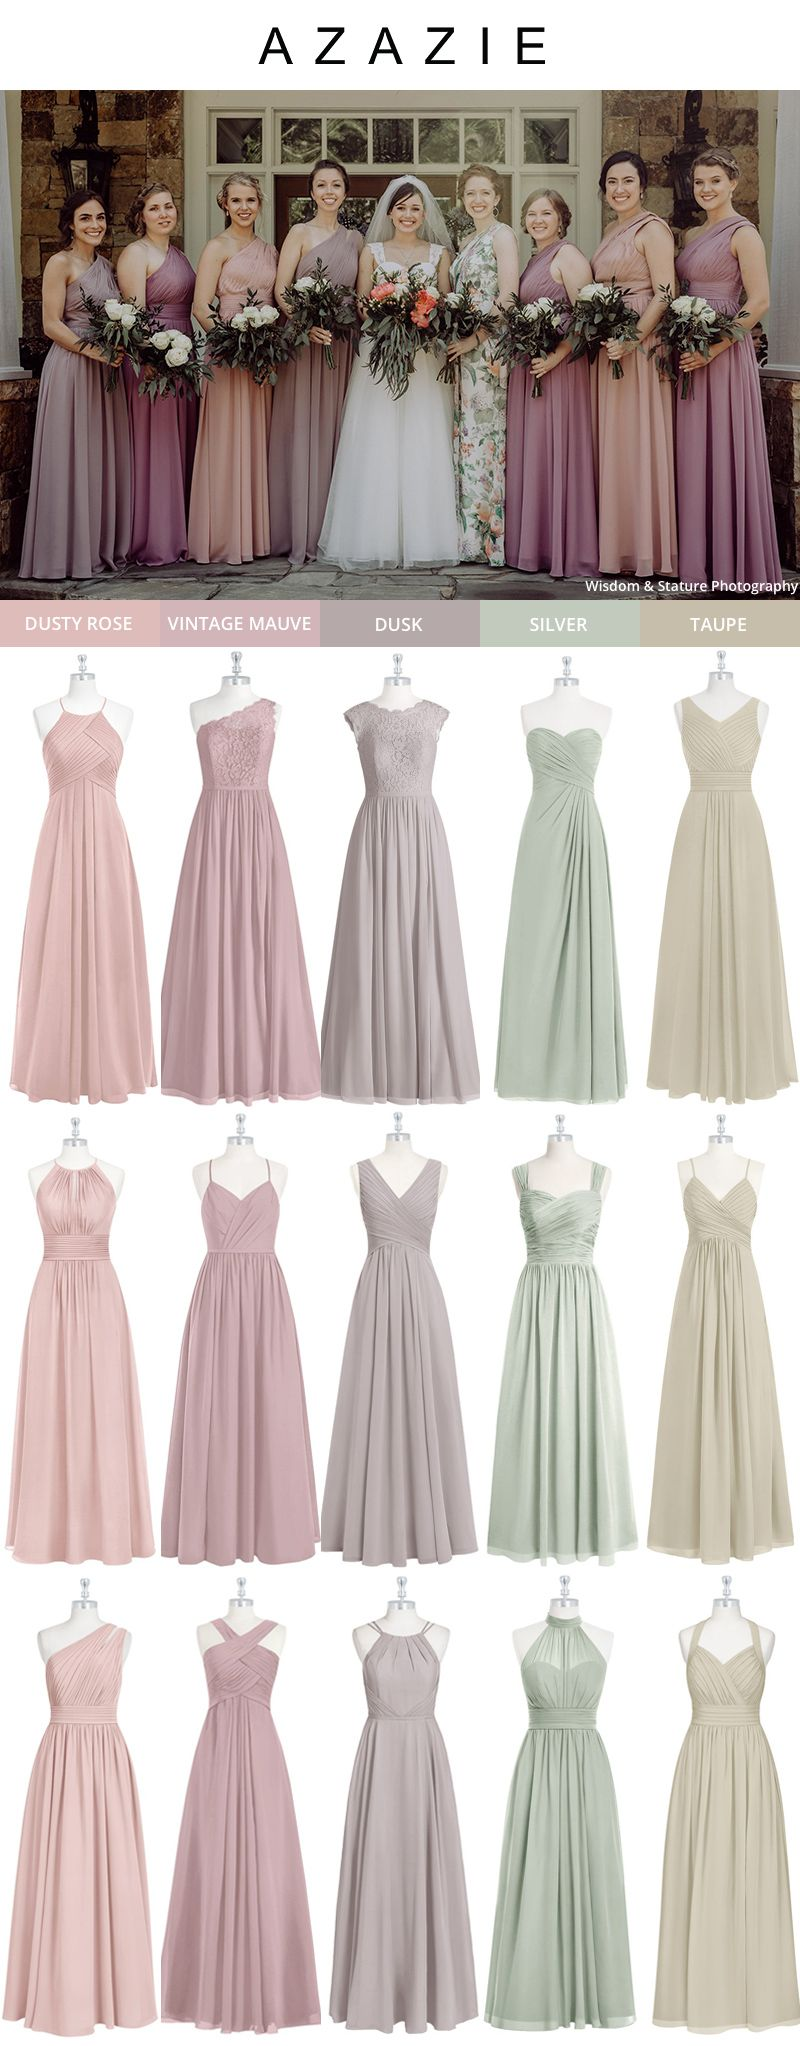 Farbe Mauve Taupe Mix And Match Bridesmaid Dresses: Azazie Wedding Color Inspirations | Taupe Bridesmaid Dresses, Summer Bridesmaid Dresses, Mixed Bridesmaid Dresses